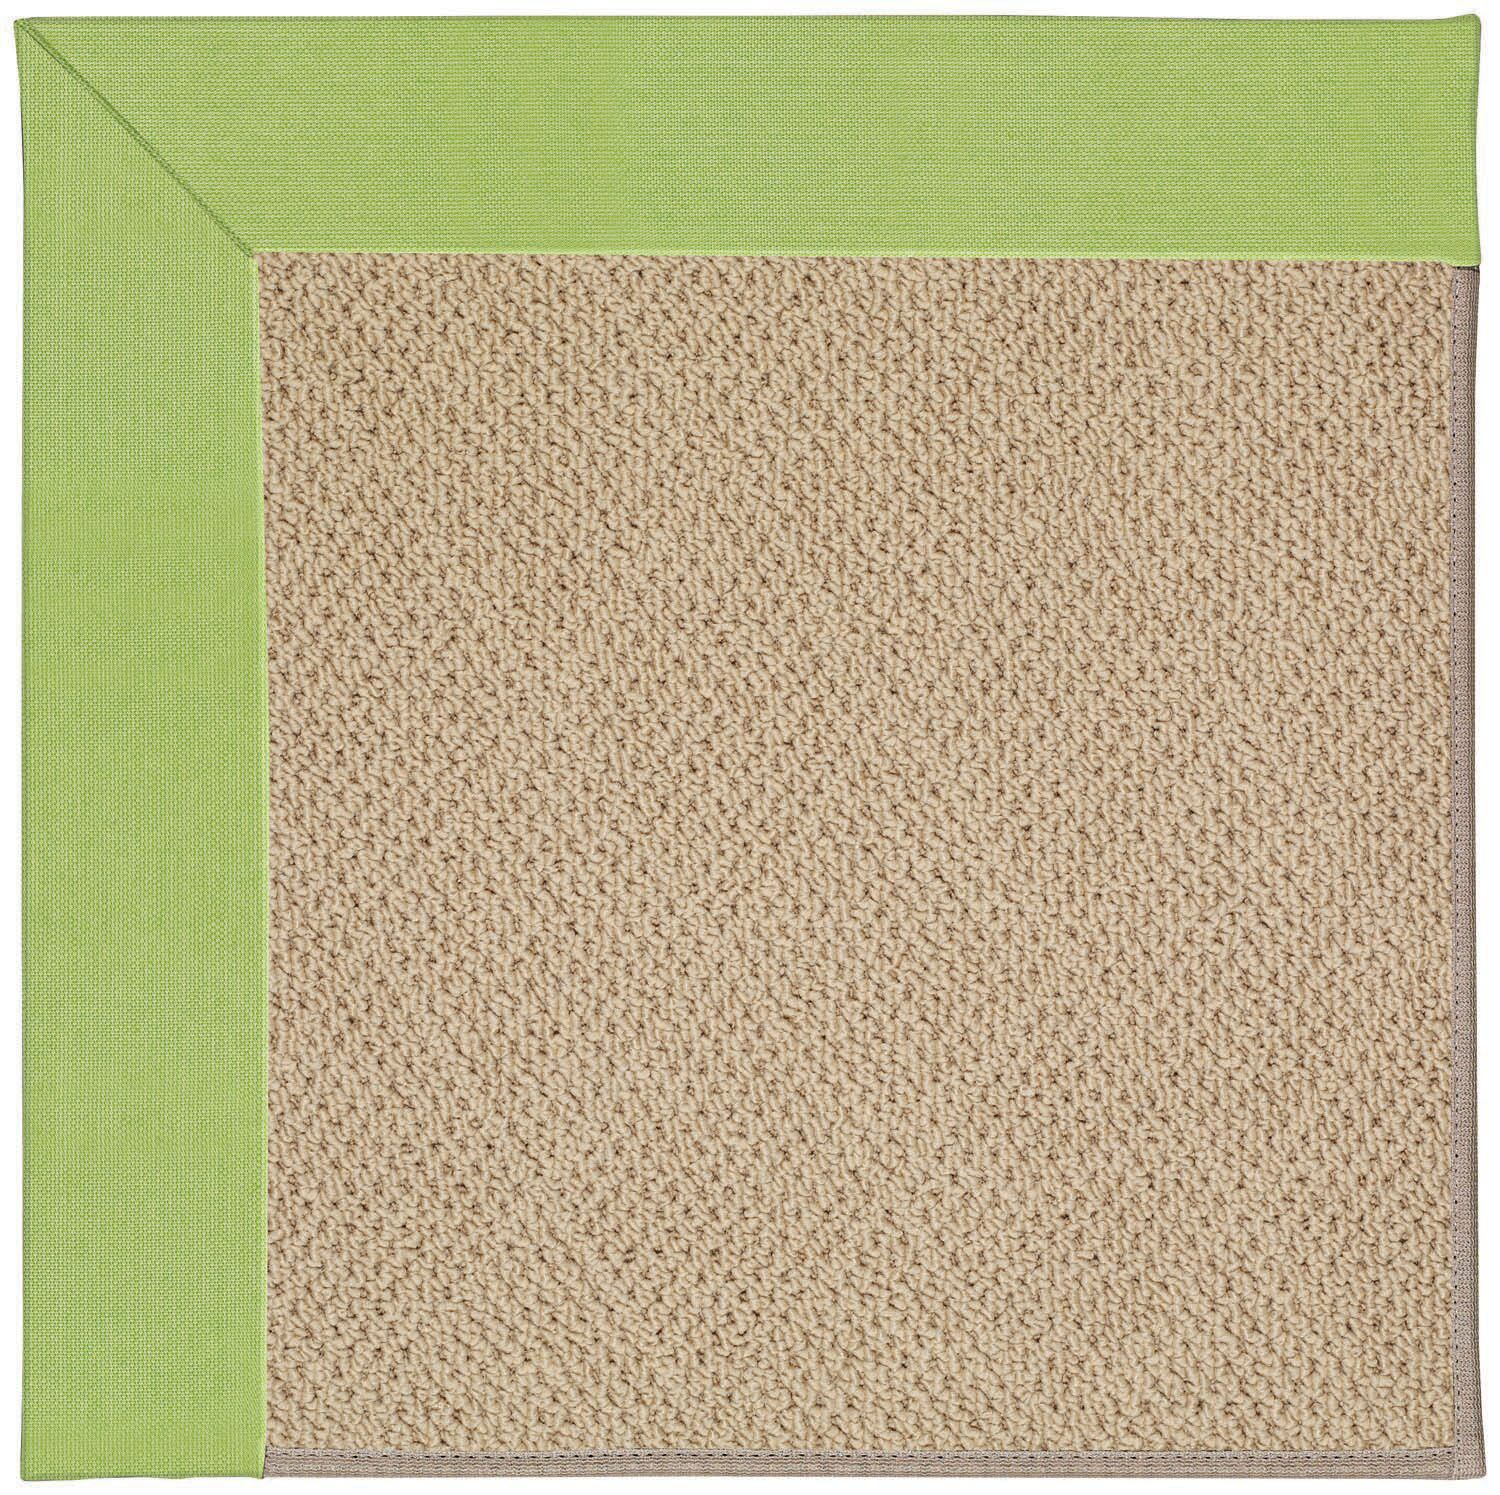 Lisle Machine Tufted Parakeet/Brown Indoor/Outdoor Area Rug Rug Size: Square 4'